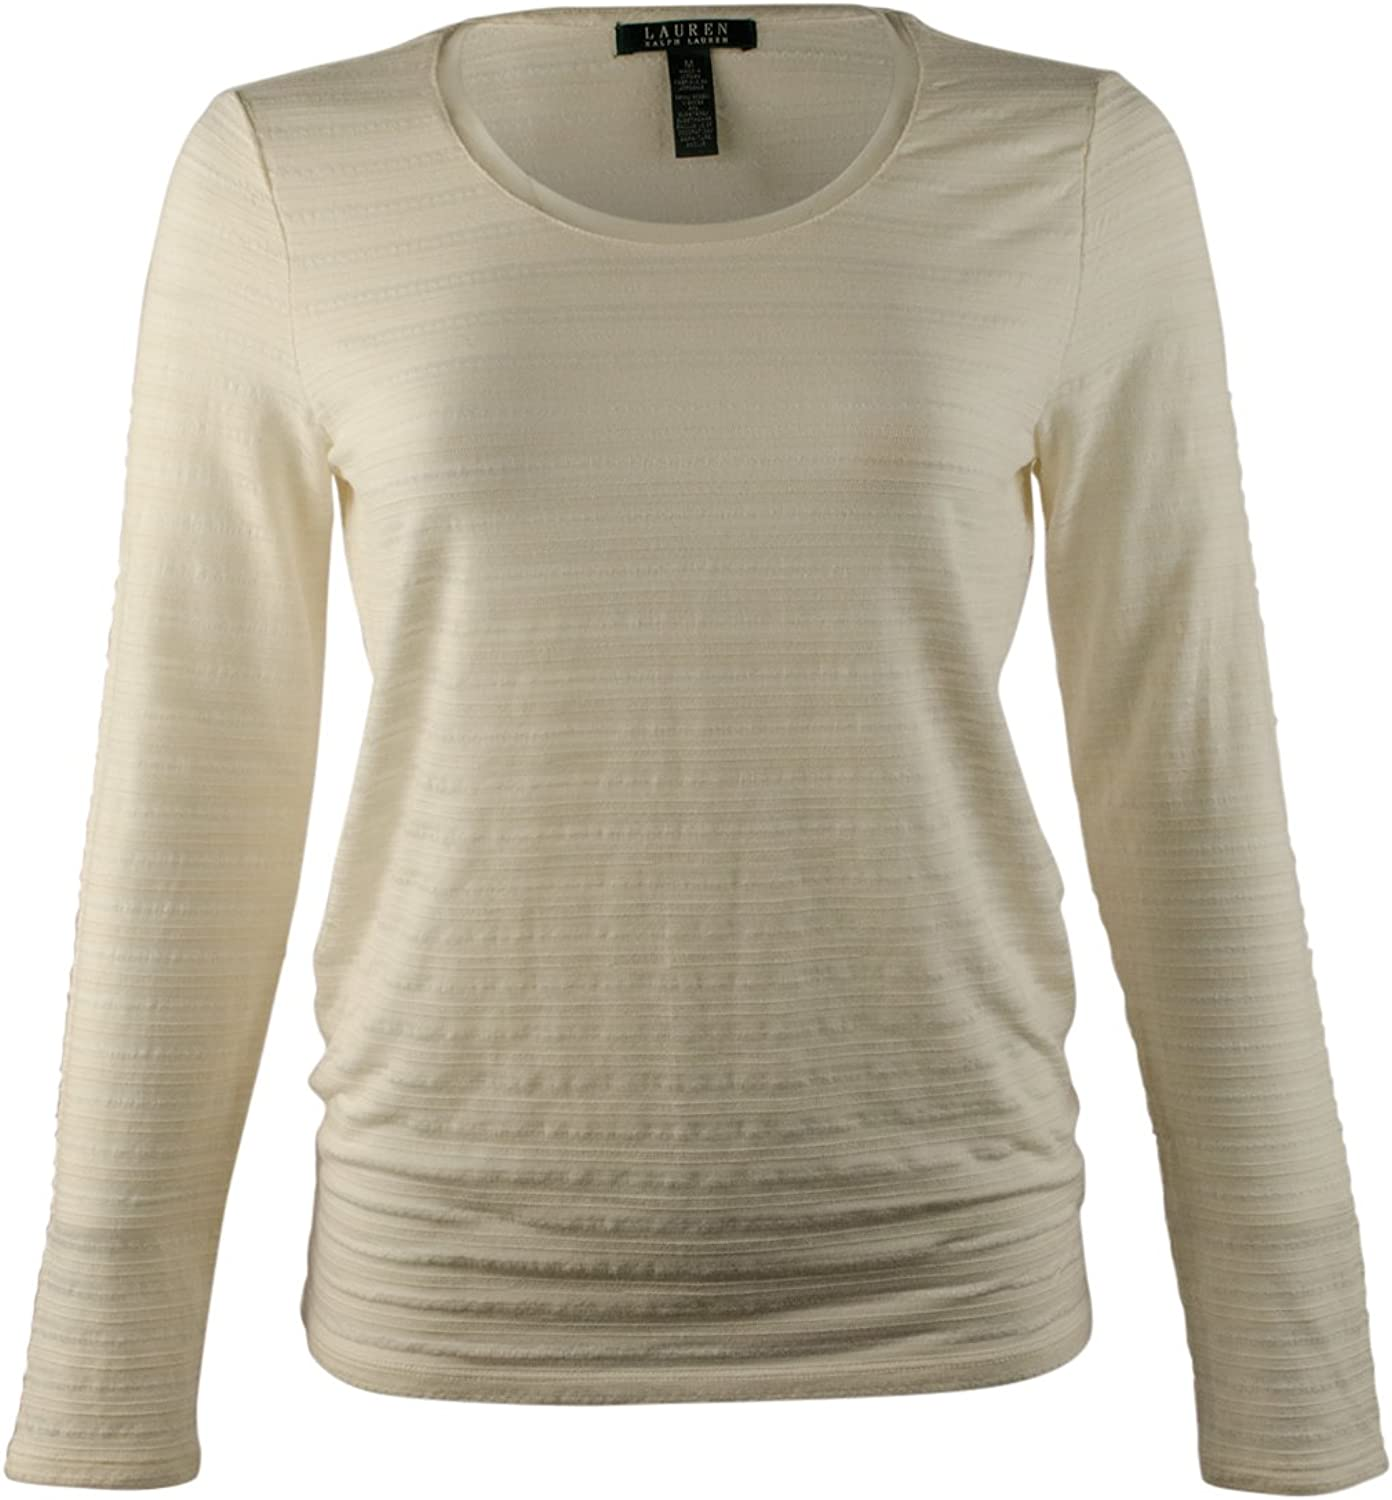 Lauren Ralph Lauren Women's Stretch Scoopneck Long Sleeve Top